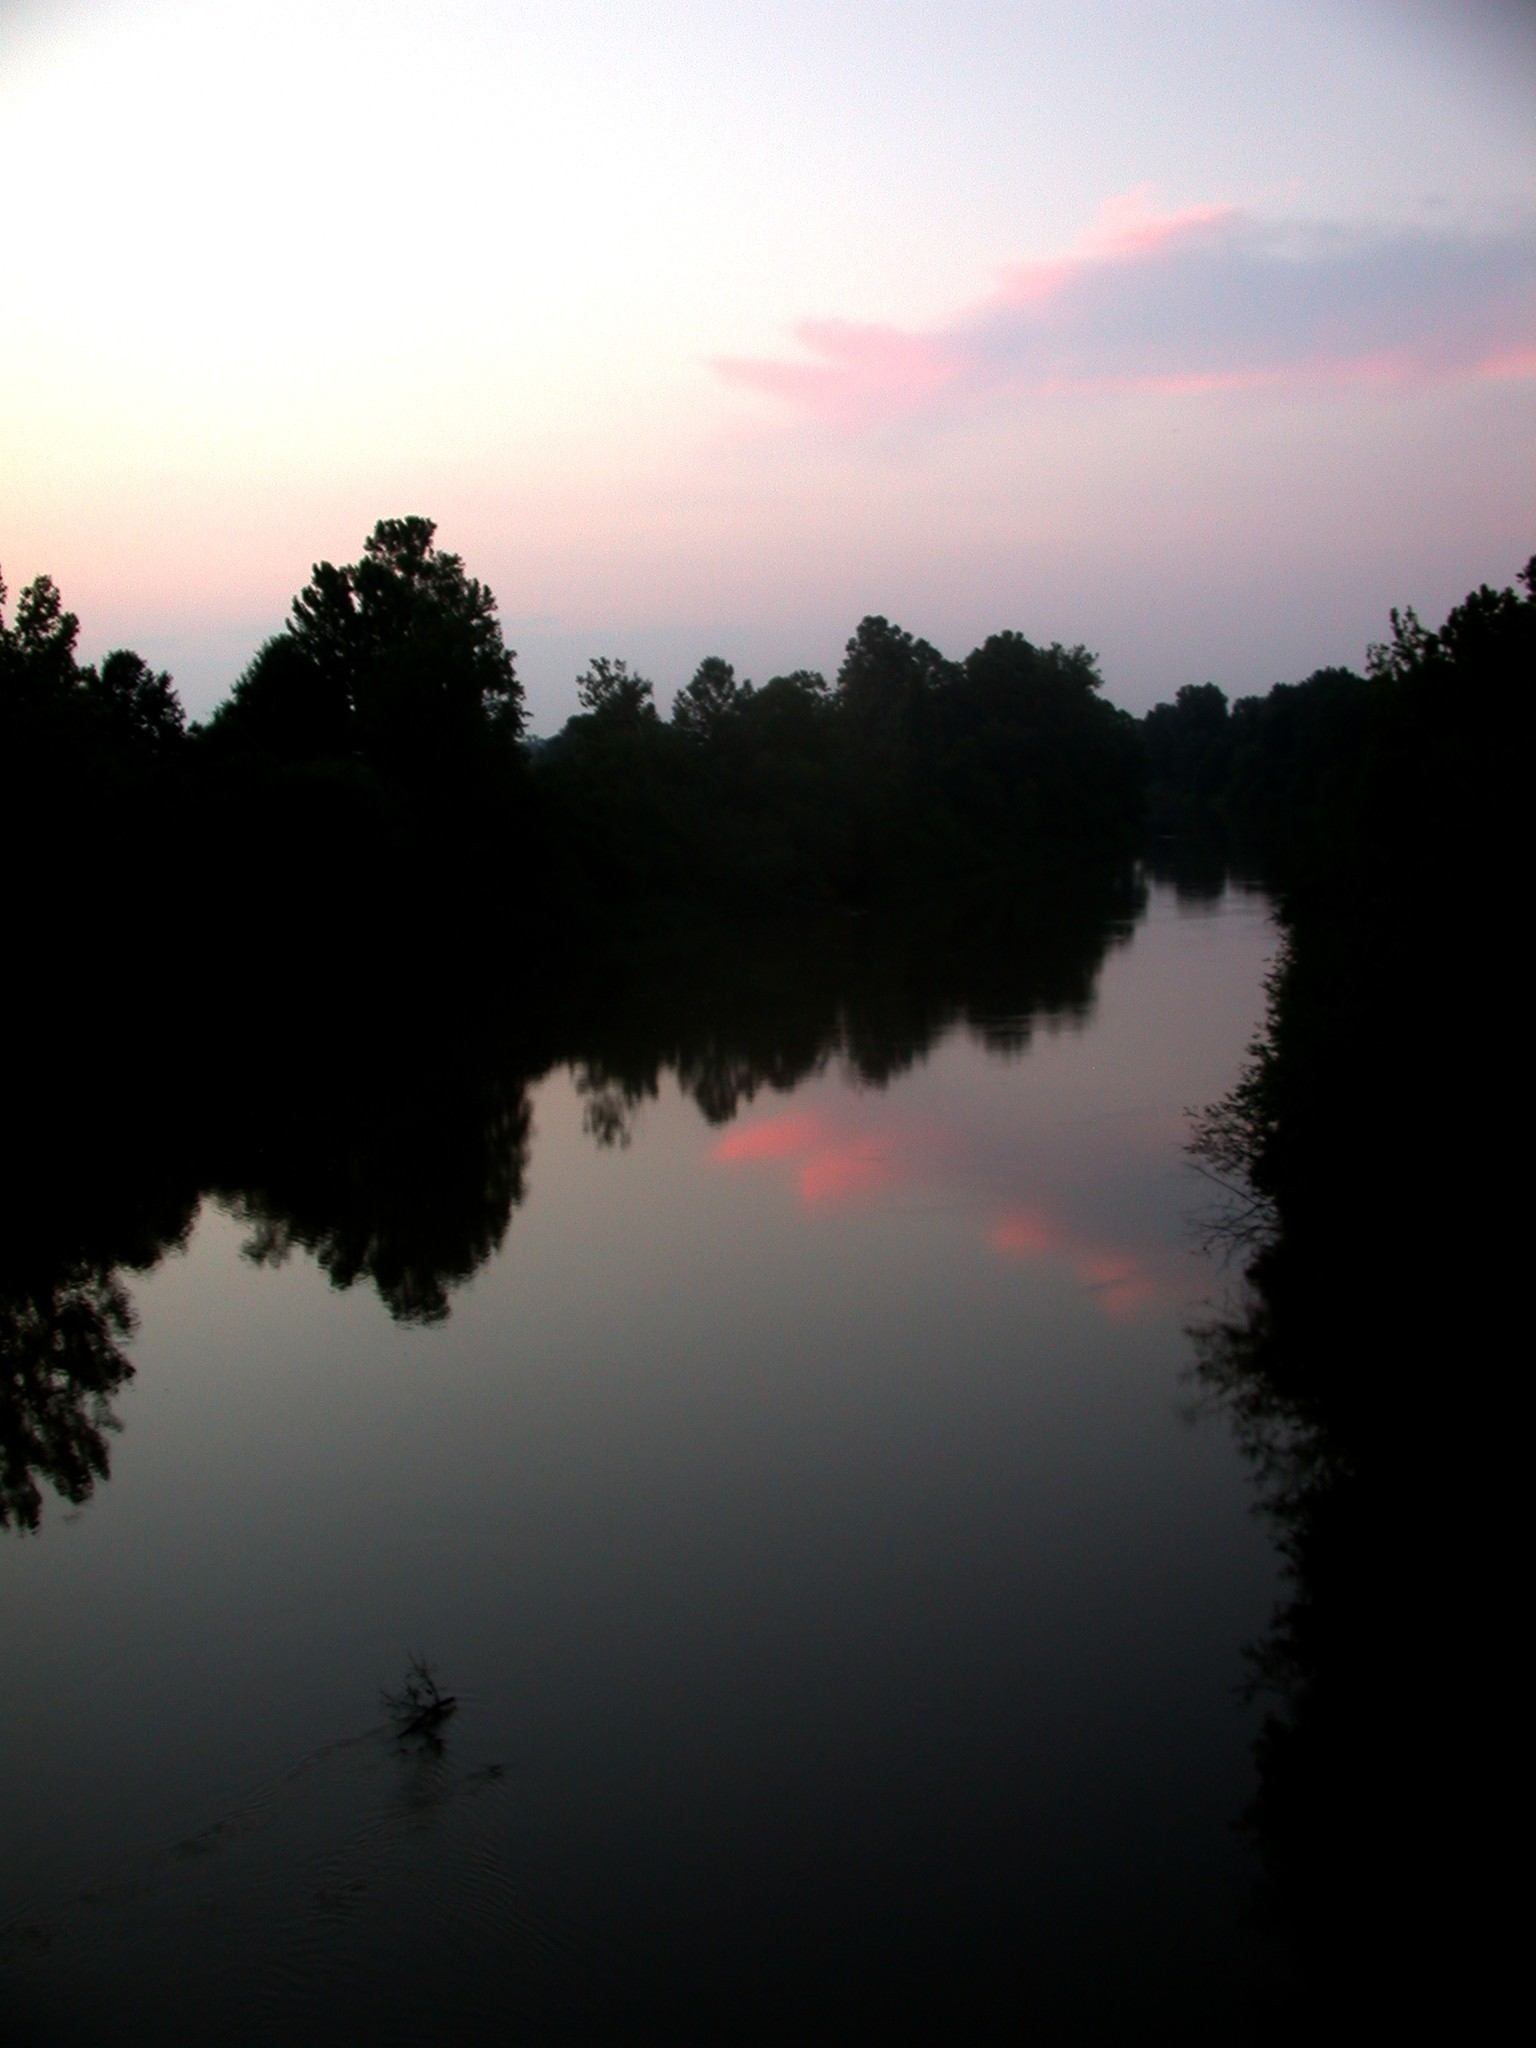 The Tallahatchie River where Till's body was found. Photo credit: M. Susan Orr-Klopfer via Wikimedia Commons